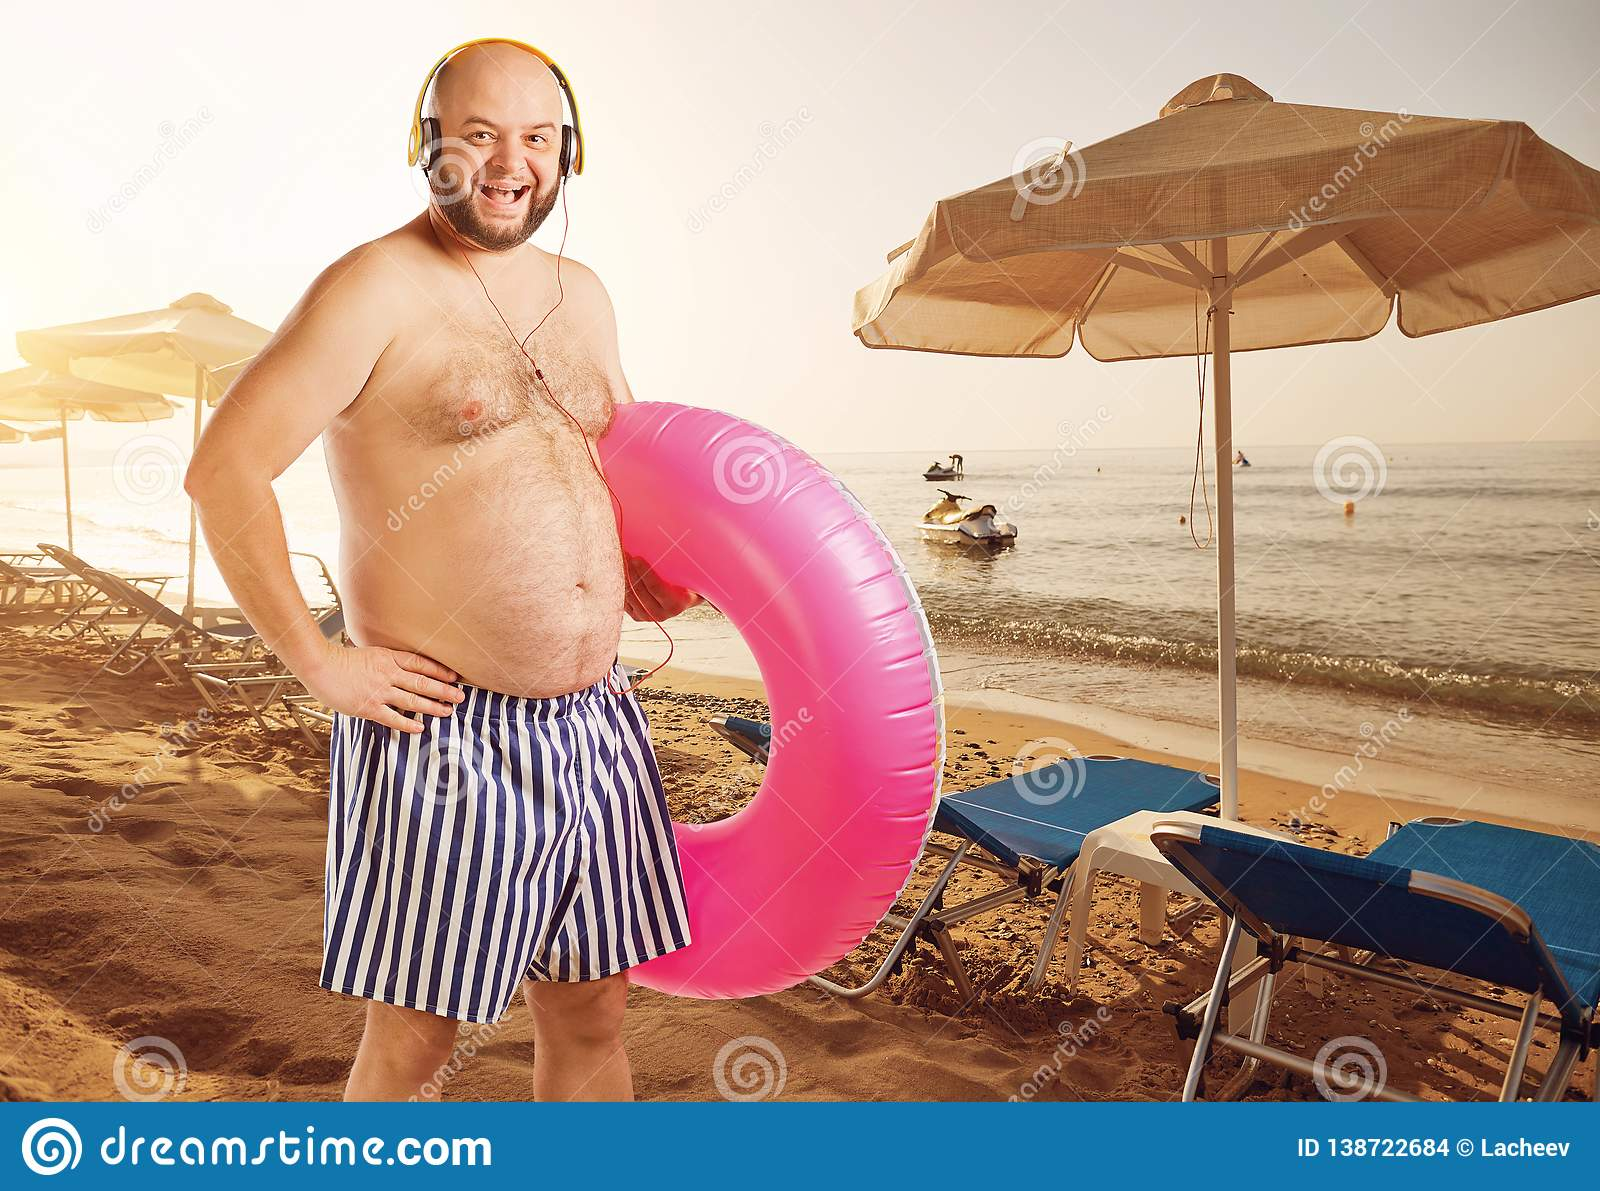 Funny Fat Man On Vacation On A Summer Beach Stock Photo Image Of Shape Stomach 138722684